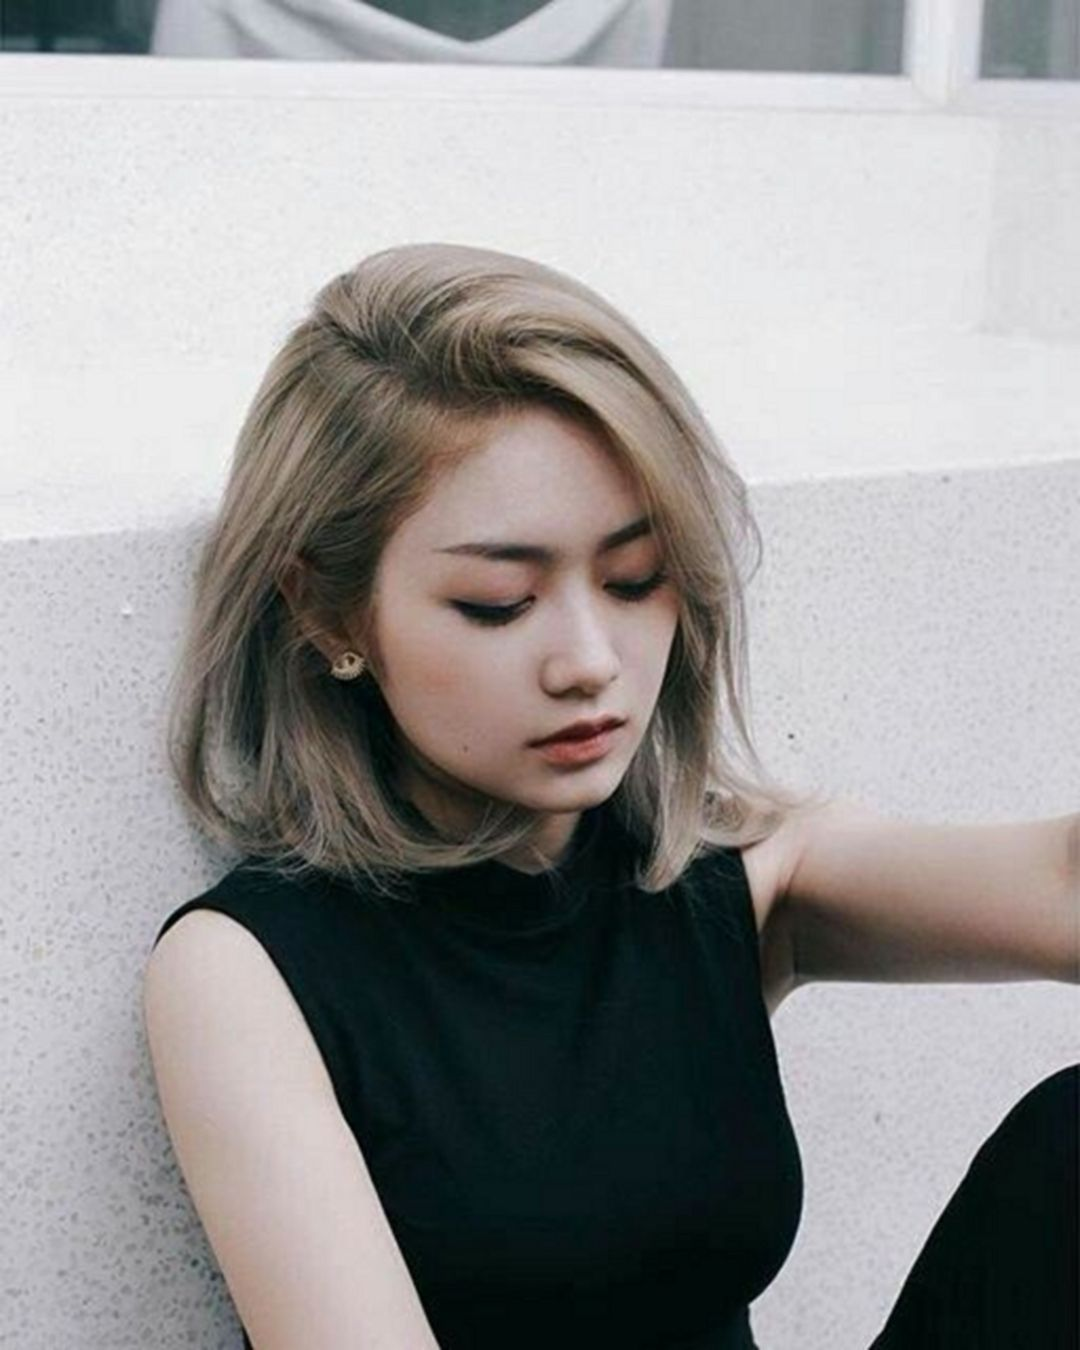 Hairstyle Korean 2019 Female 22 2019 Short Korean Haircuts Hair For Hairstyles Asian Short Hair Korean Short Hair Hair Styles